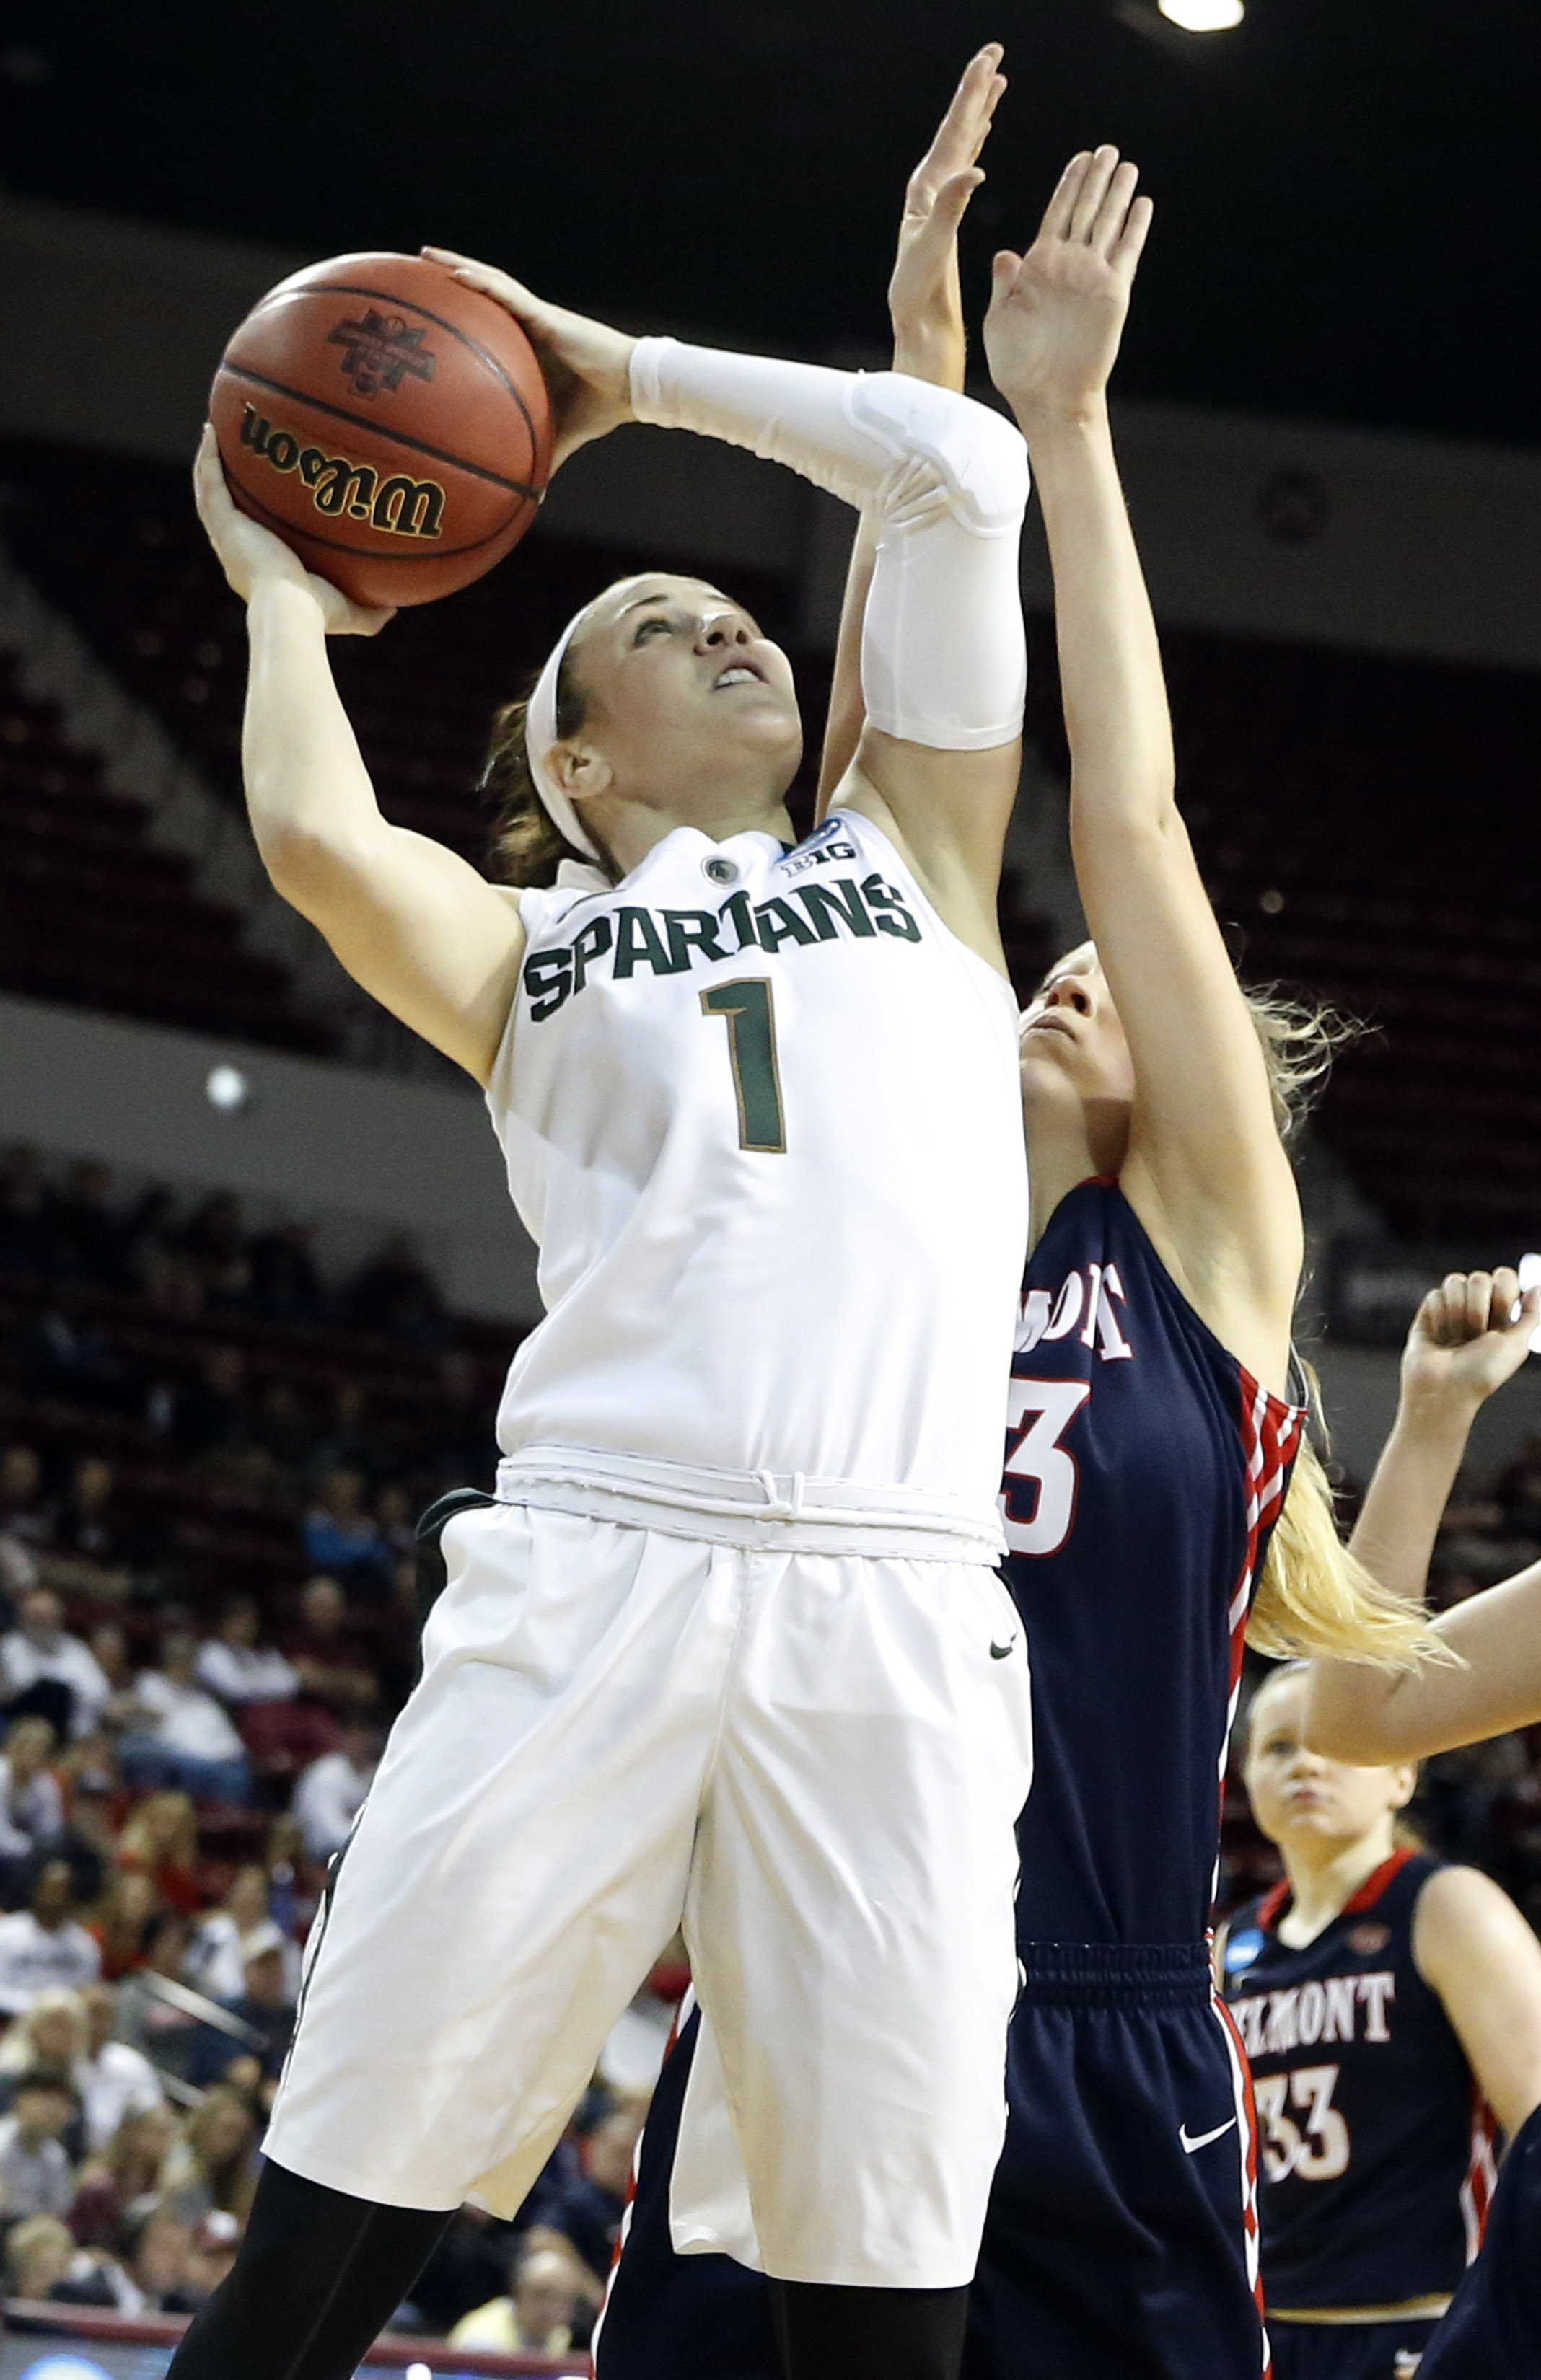 Michigan State guard Tori Jankoska (1) attempts a shot at the basket as a Belmont player defends during the second half in a first-round women's college basketball game in the NCAA Tournament, Friday, March 18, 2016, in Starkville, Miss. Michigan State wo